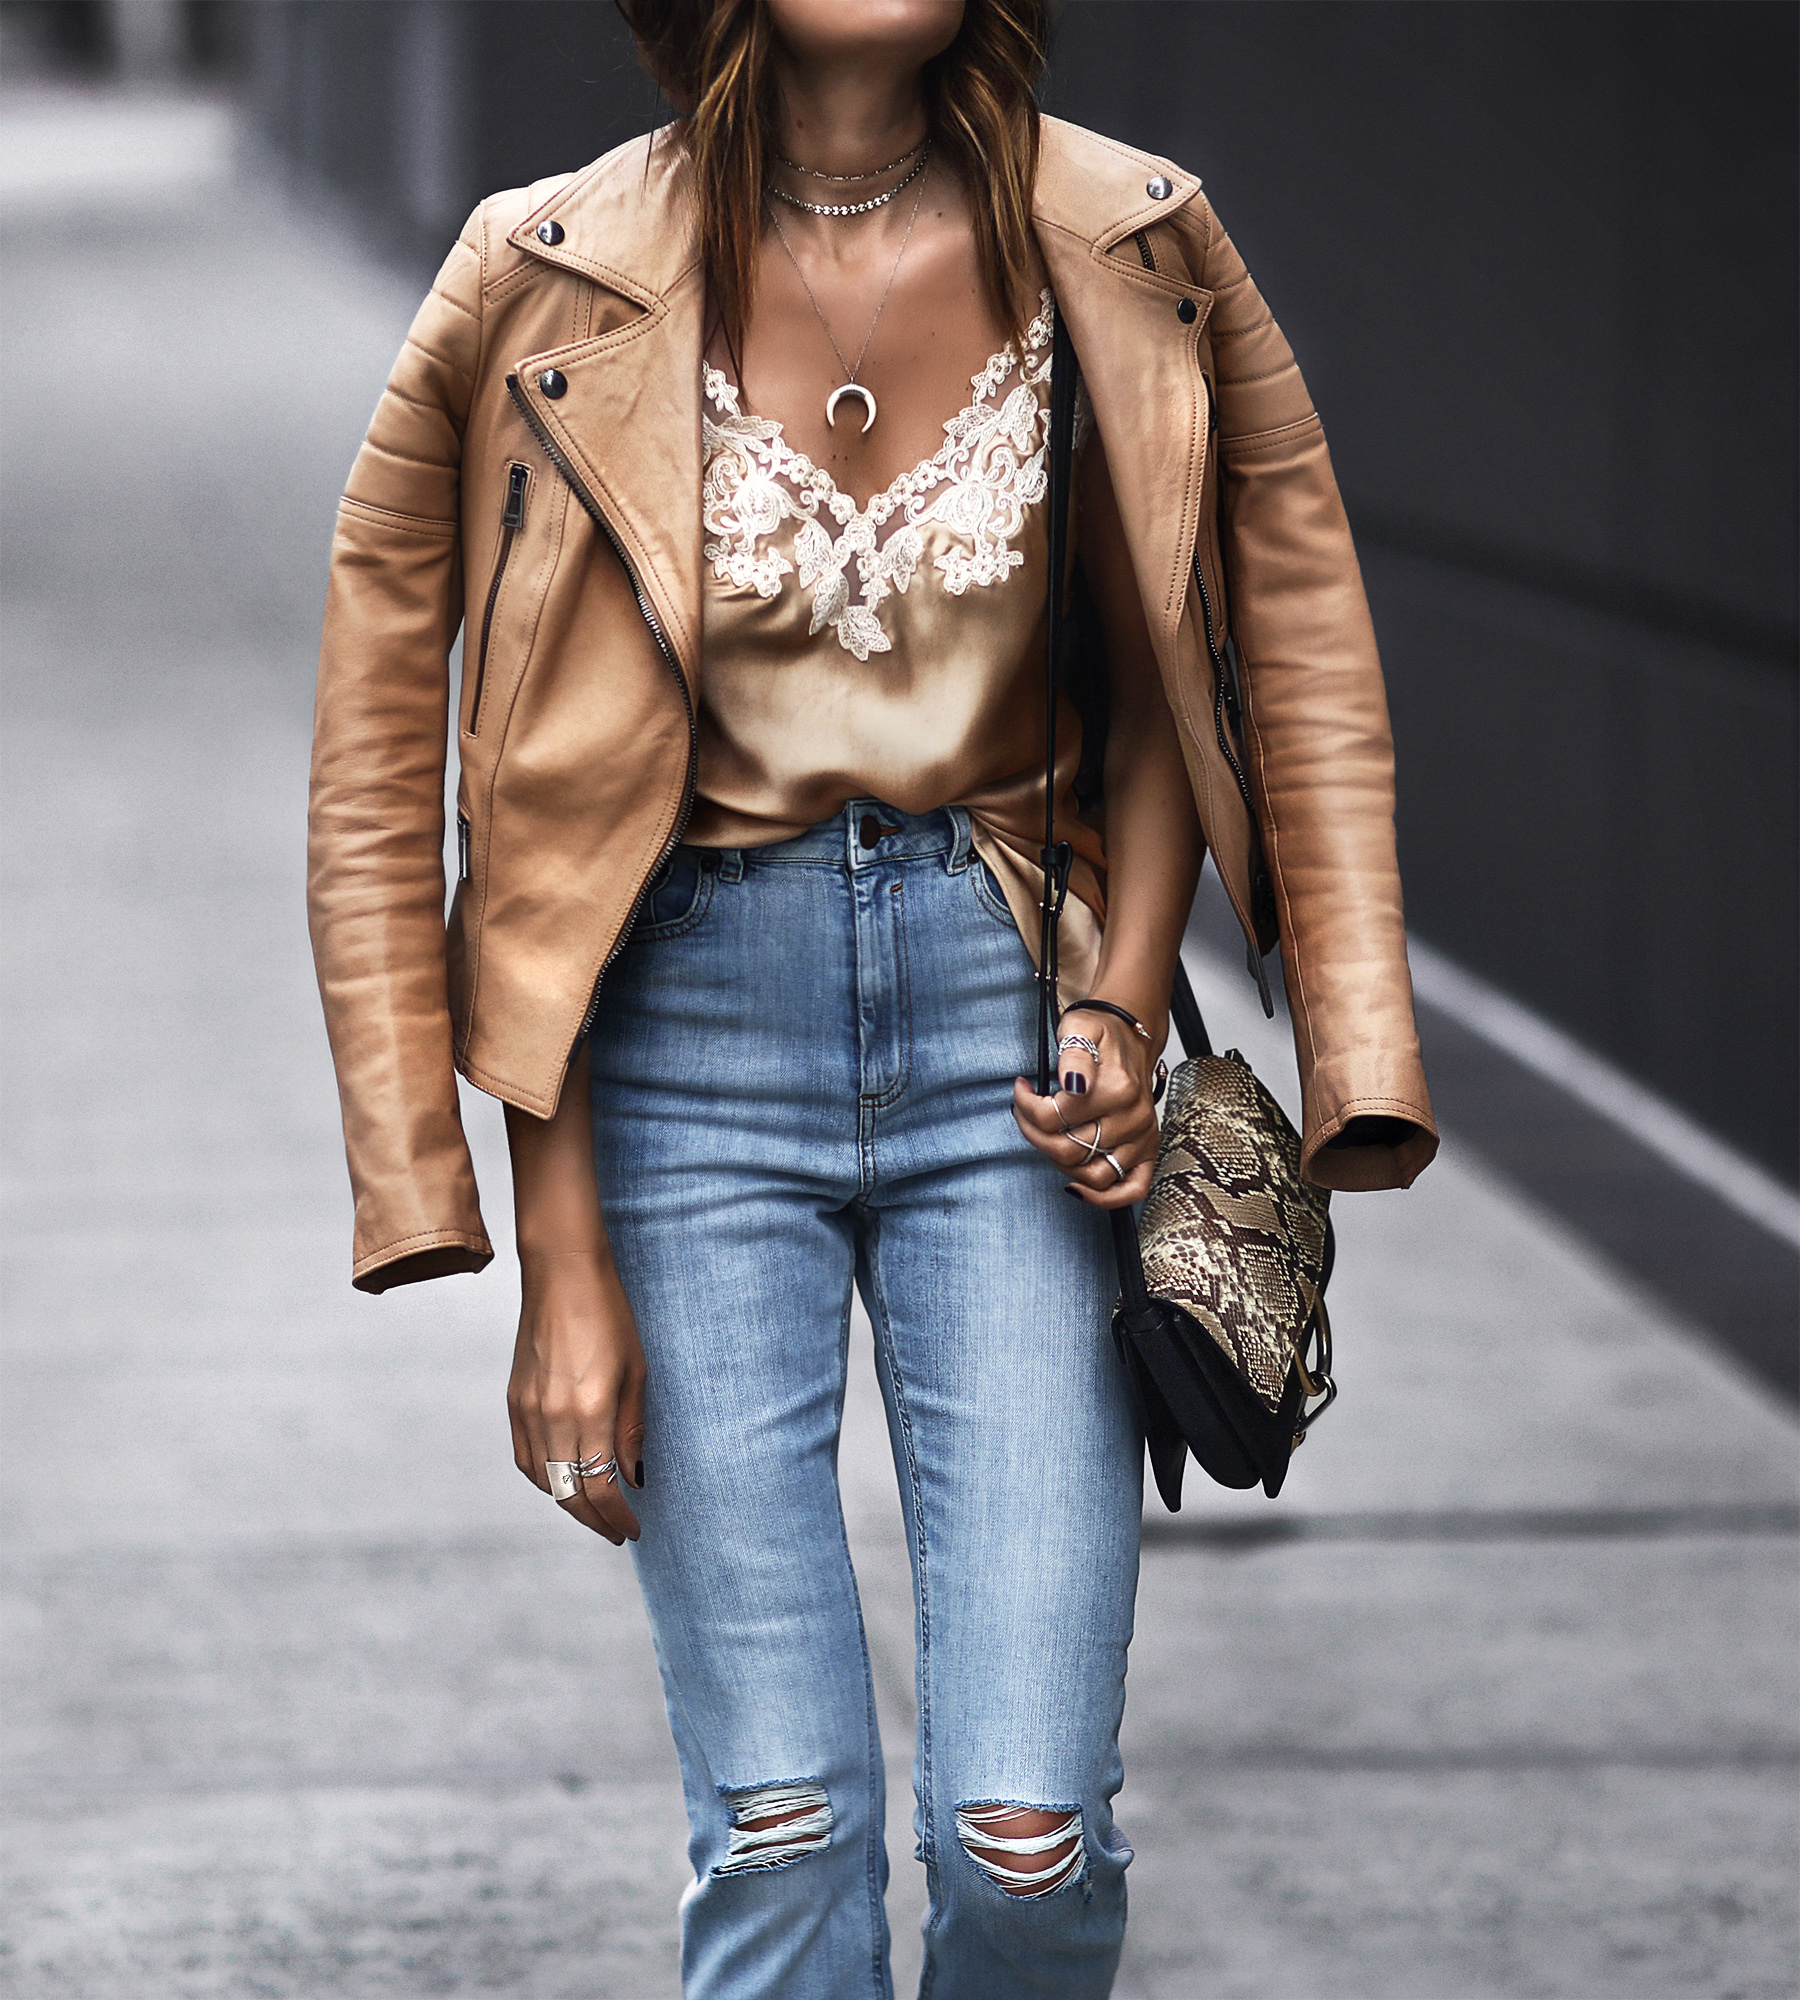 camel leather jacket, lace and satin cami, high waisted jeans, layered necklaces, chloe bag